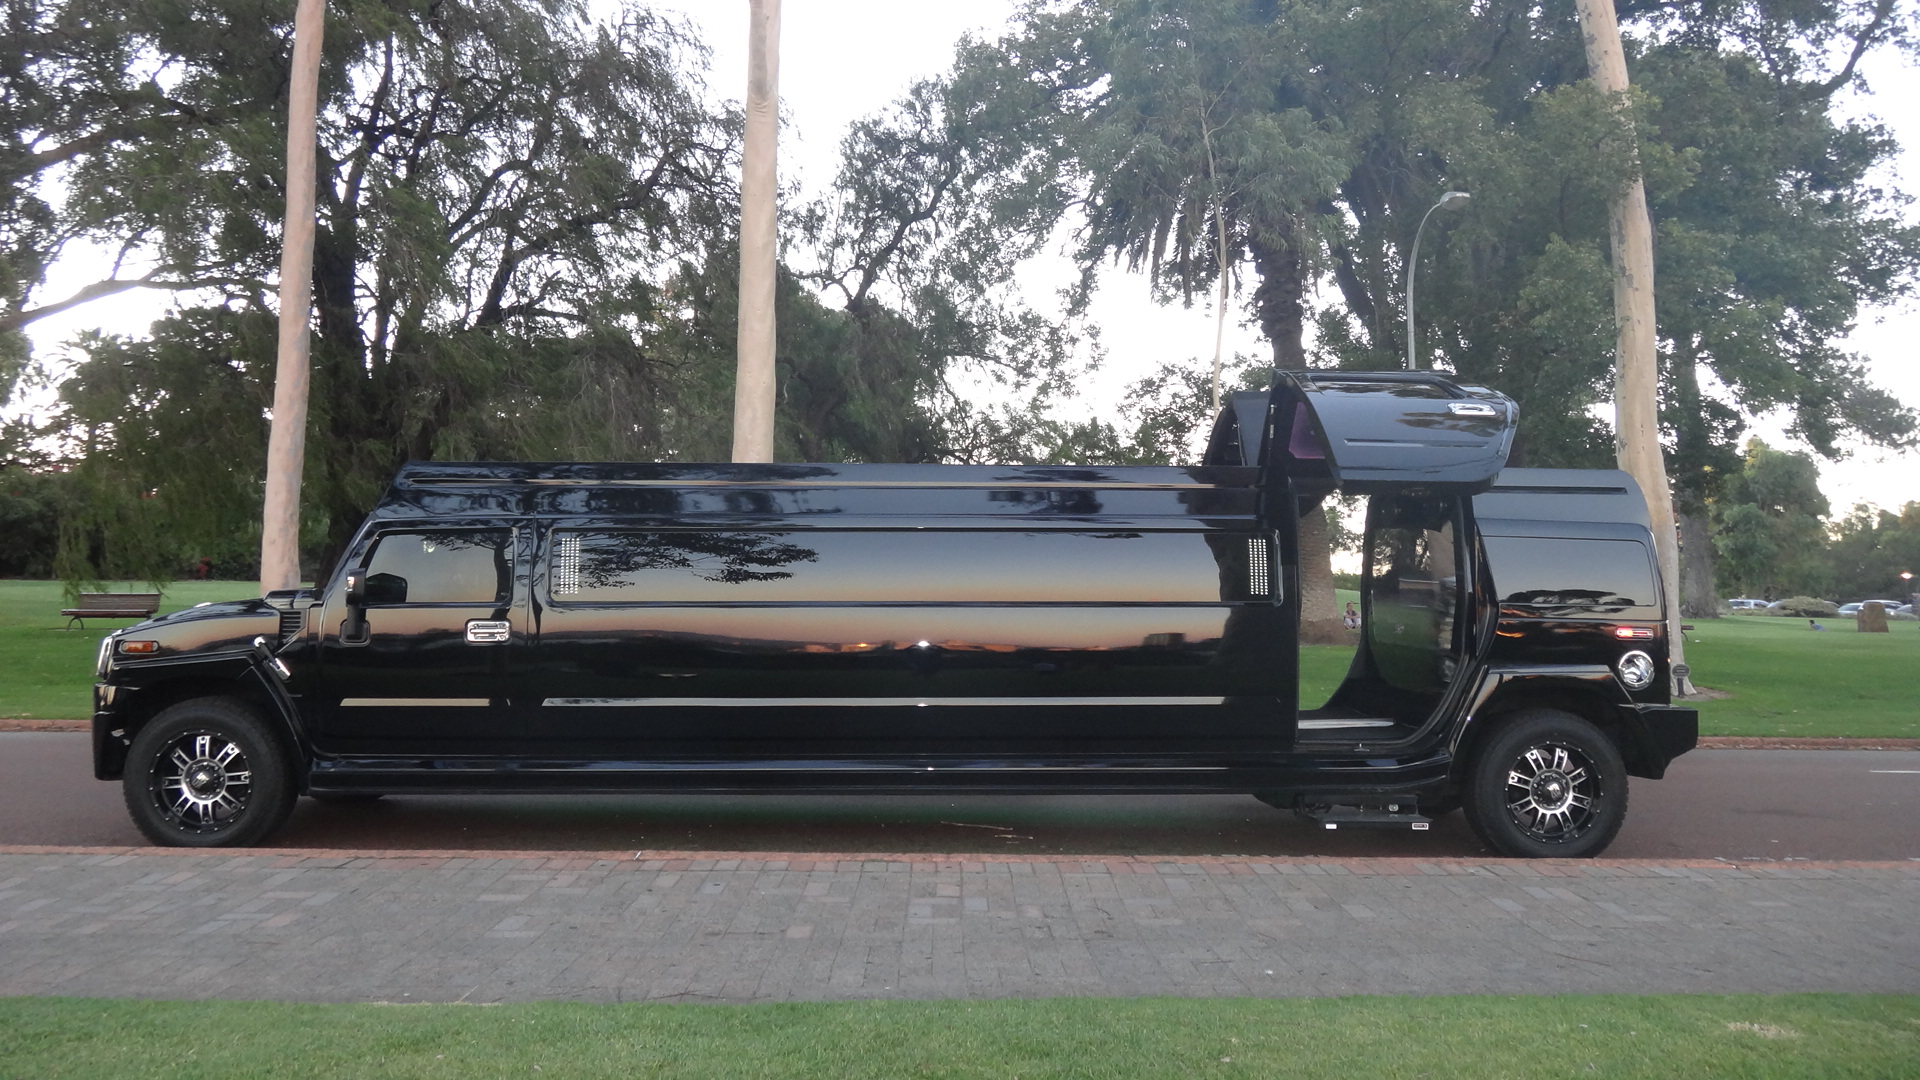 Limo hire wedding day – hire a stunning Chrysler